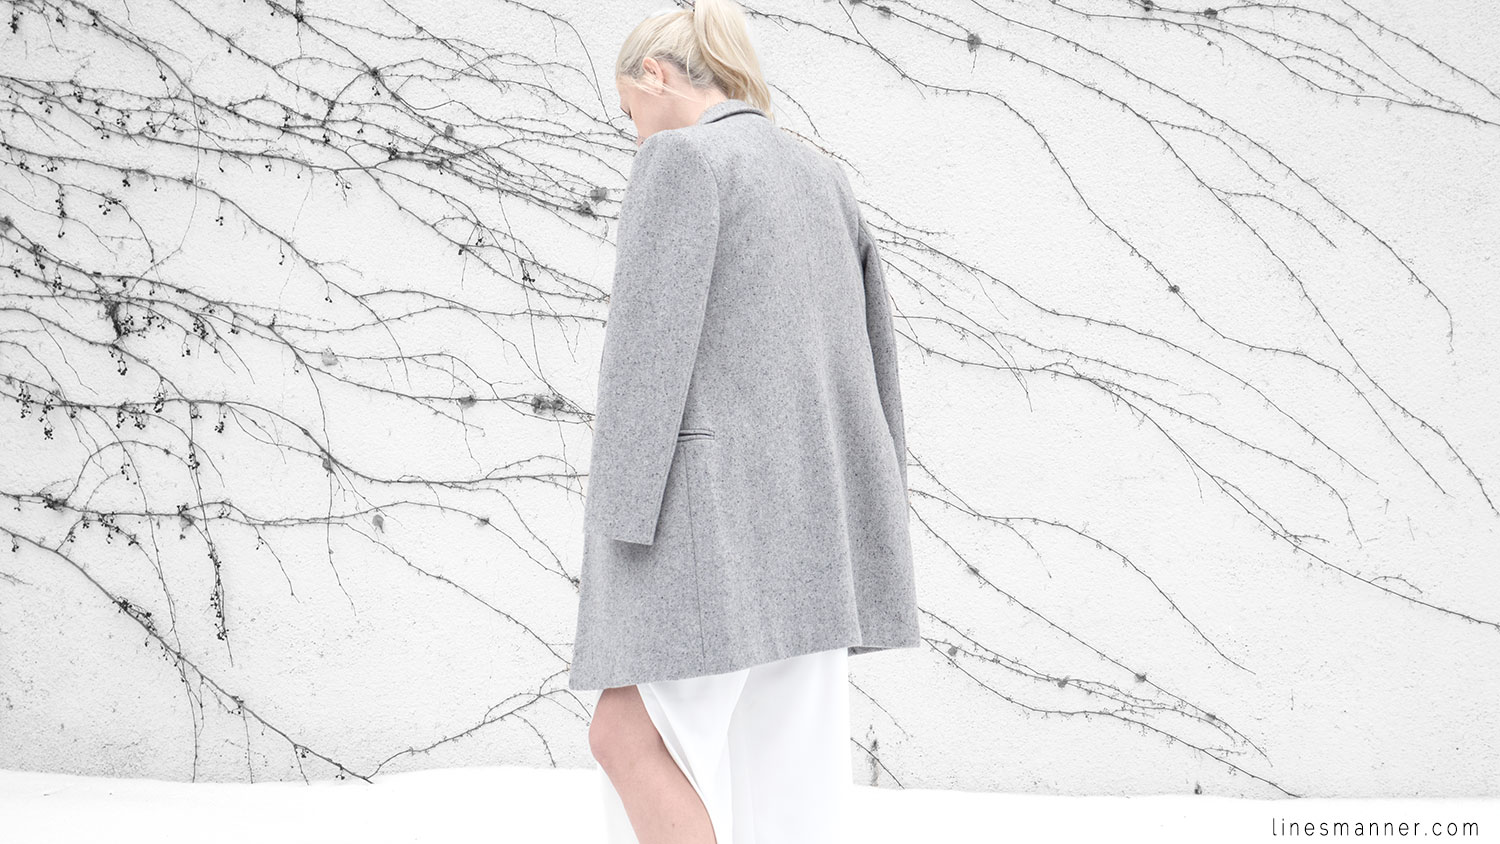 Lines-Manner-White_on_White-All_white-relaxed-shapes-tailored-blazer-pantsuit-clean-details-staples-essentials-sleek-LXE-box bag-light-fresh-slouchy-10